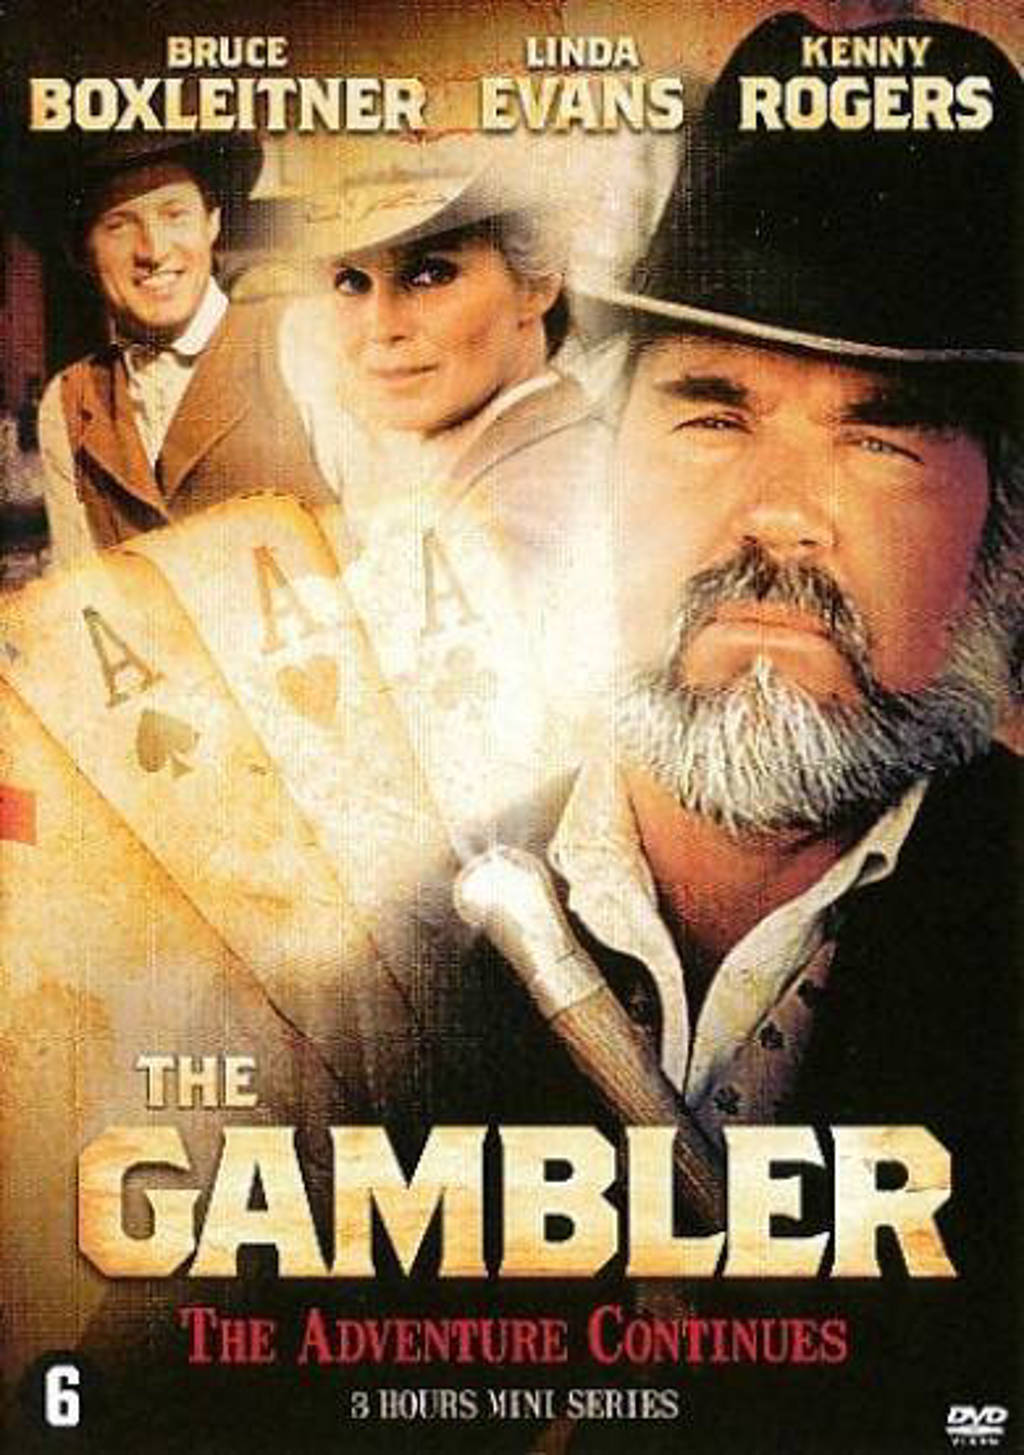 Gambler 2 - The story continues (DVD)